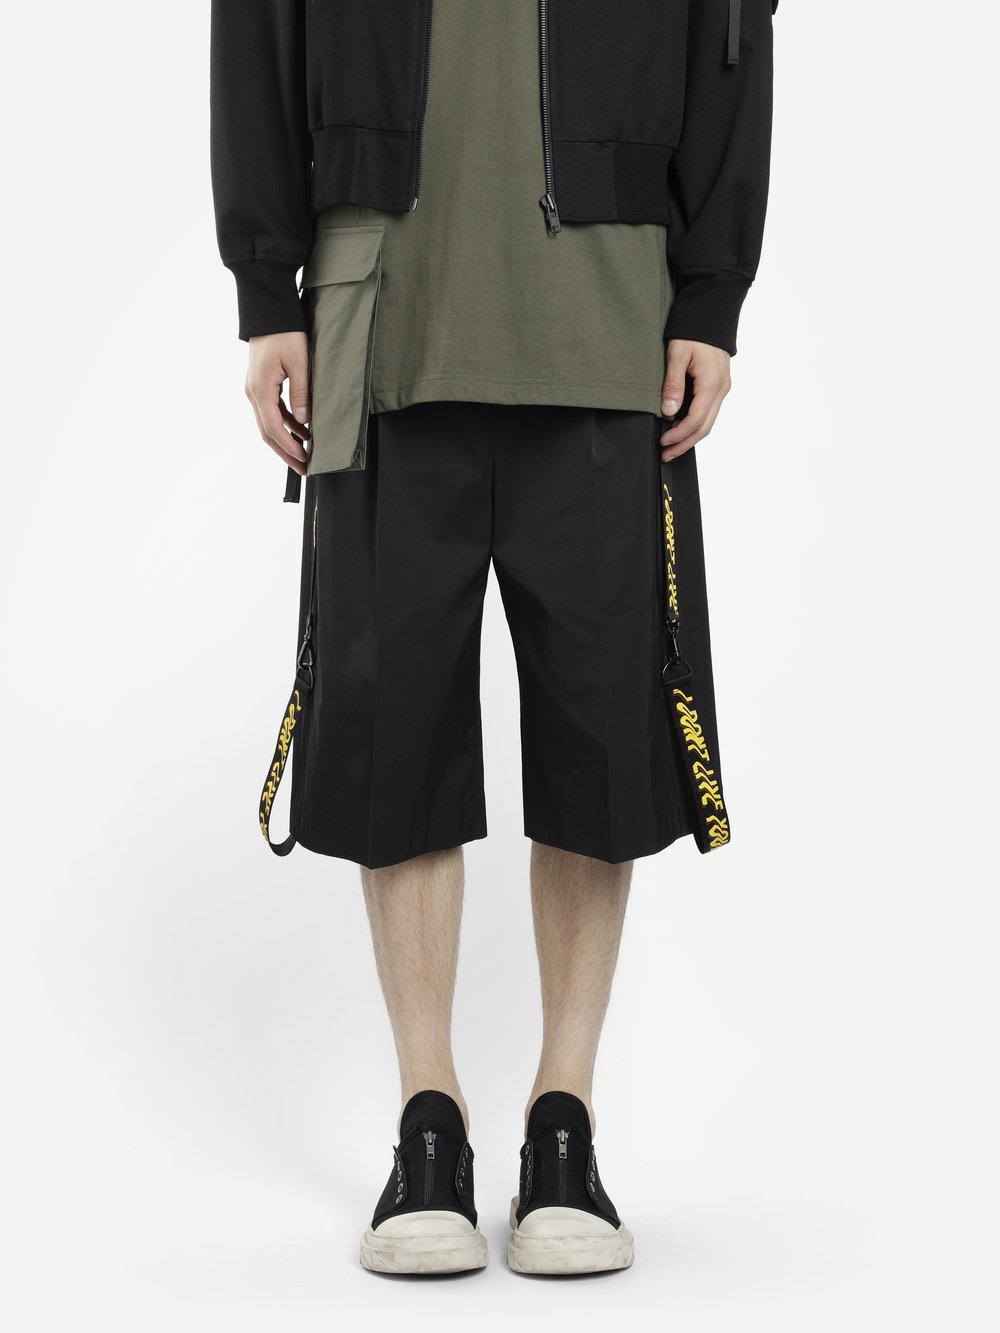 D BY D MEN'S BLACK I DON'T LIVE YOUR LIFE LATERAL BANDS BERMUDA PANTS